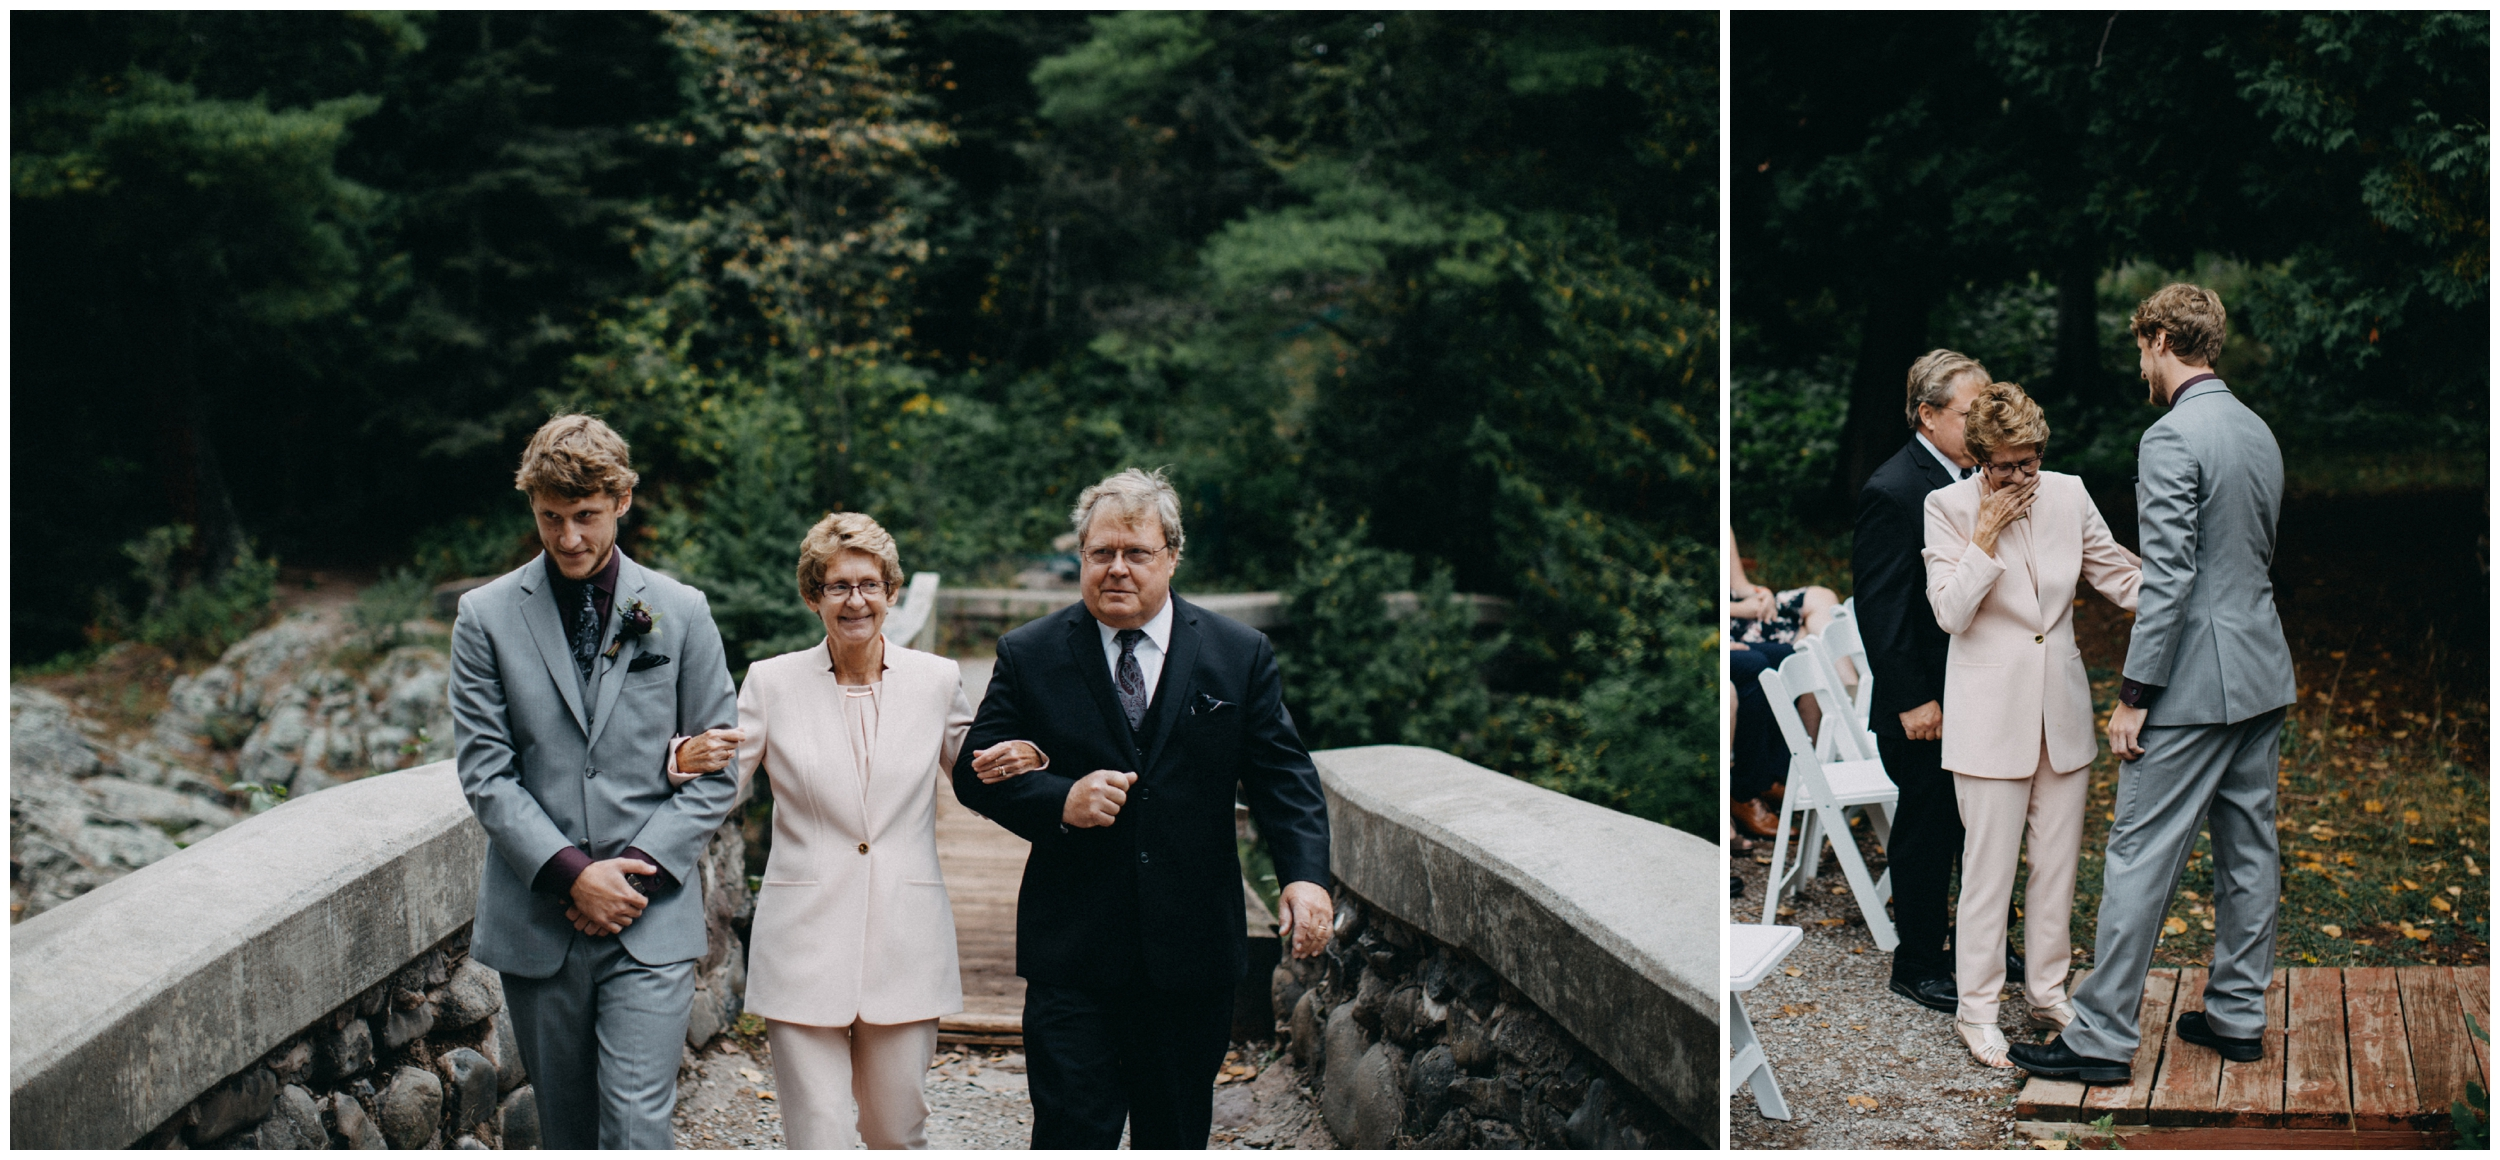 Intimate wedding ceremony in the woods at Lester Park in Duluth Minnesota